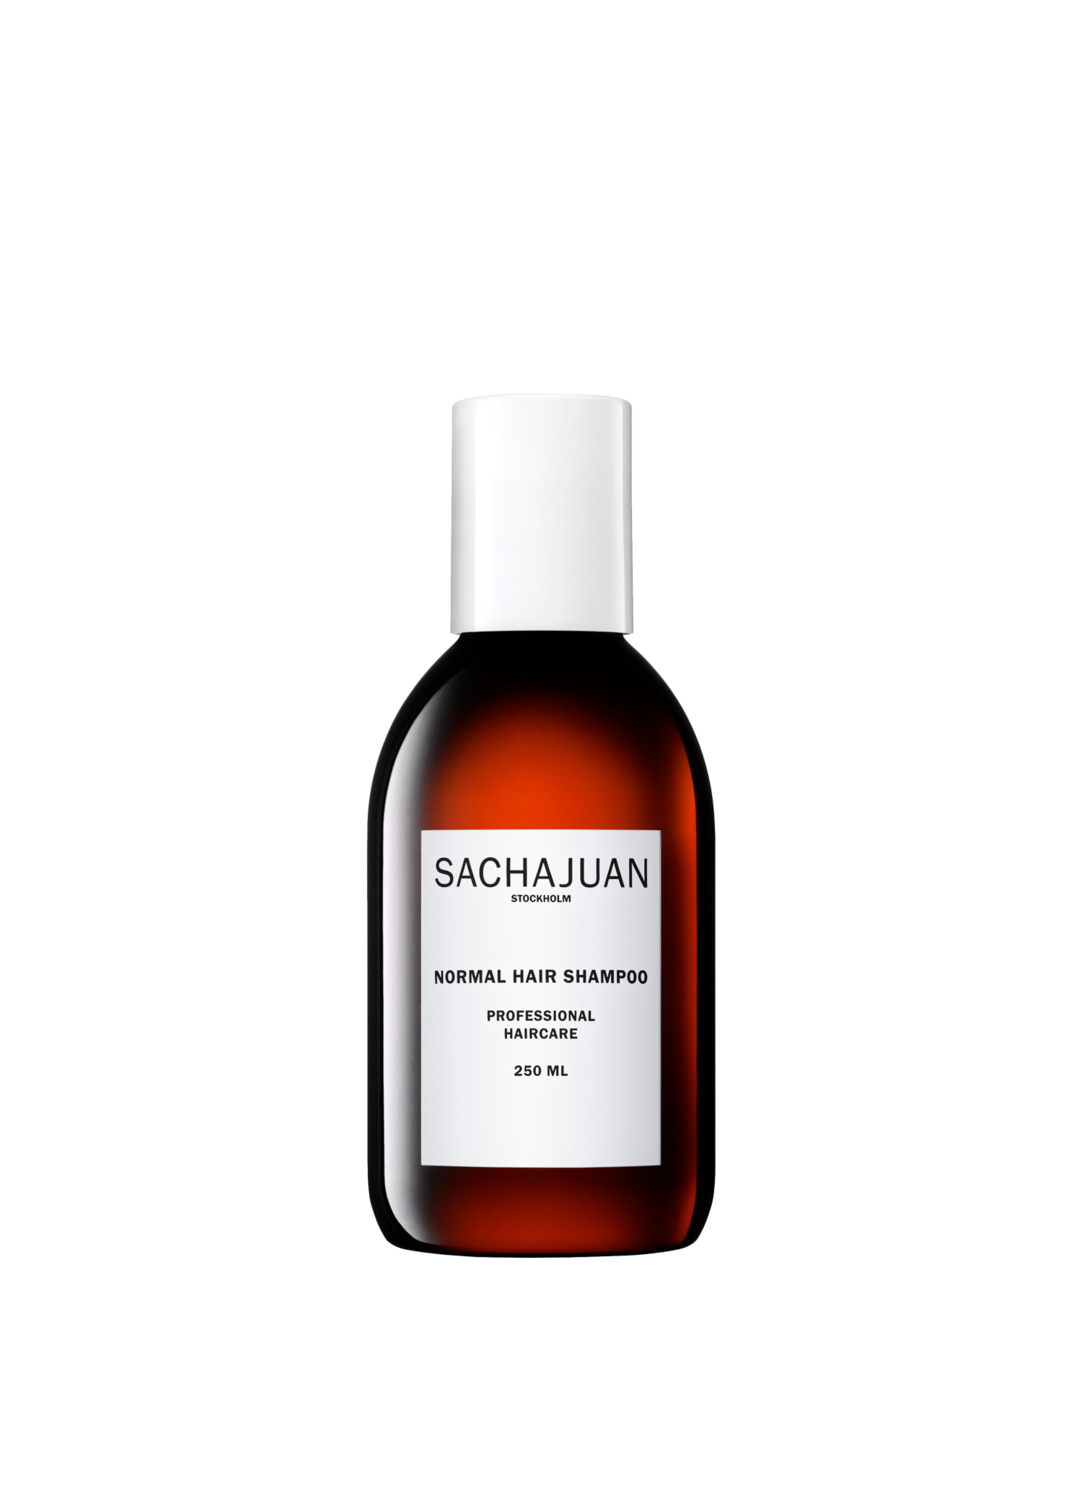 sachajuan | normal hair shampoo[product_type ]sachajuan - Kiss and Makeup